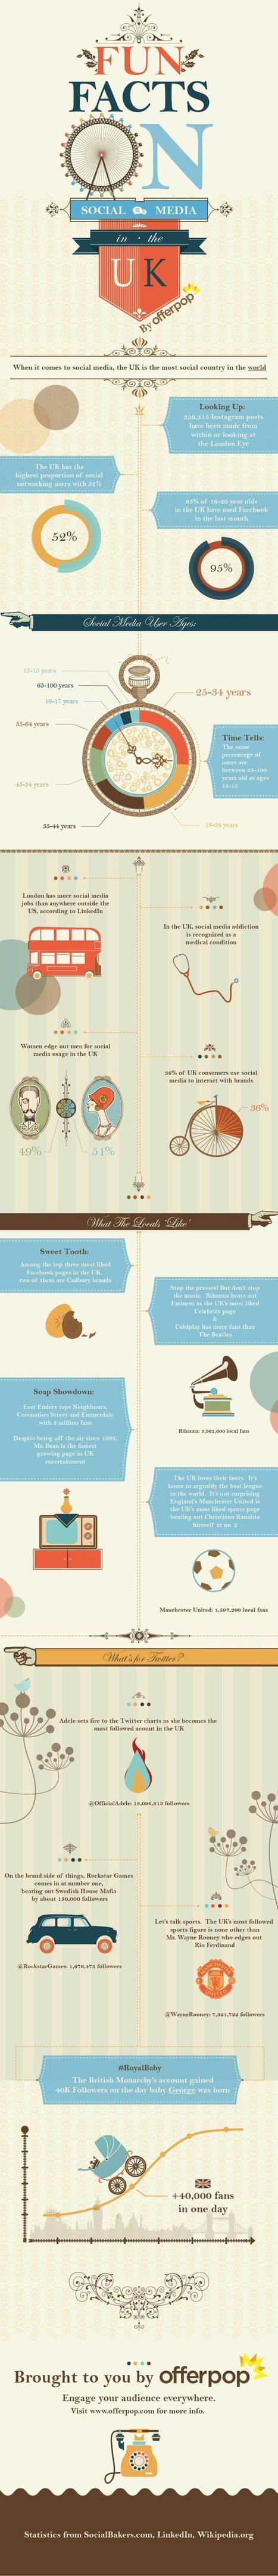 How Social Media is Used in The UK [INFOGRAPHIC] - Social Media London | Social Media | Scoop.it